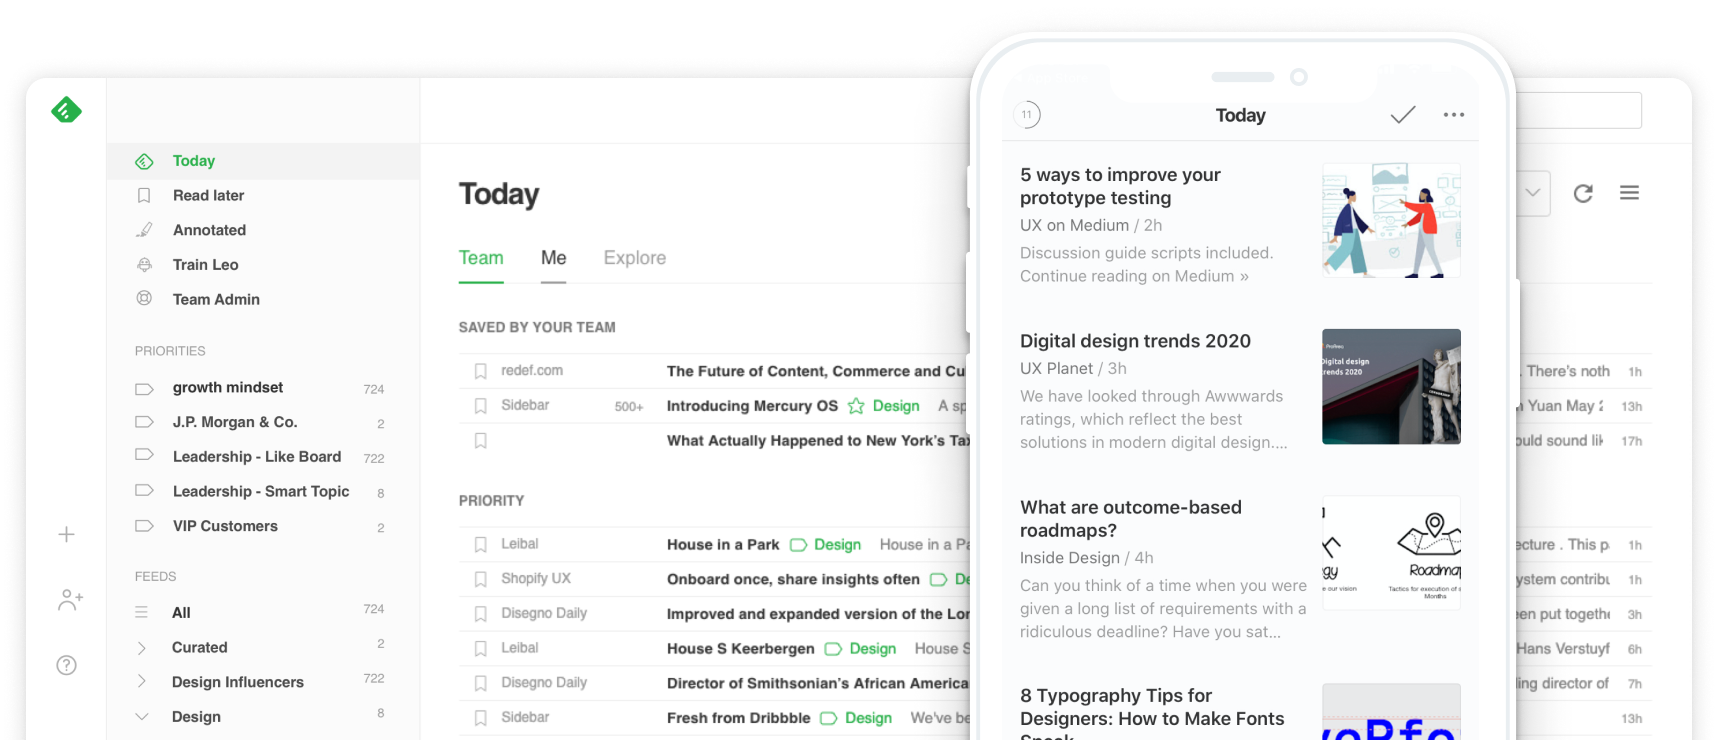 Example of the Feedly dashboard with multiple articles in a feed.